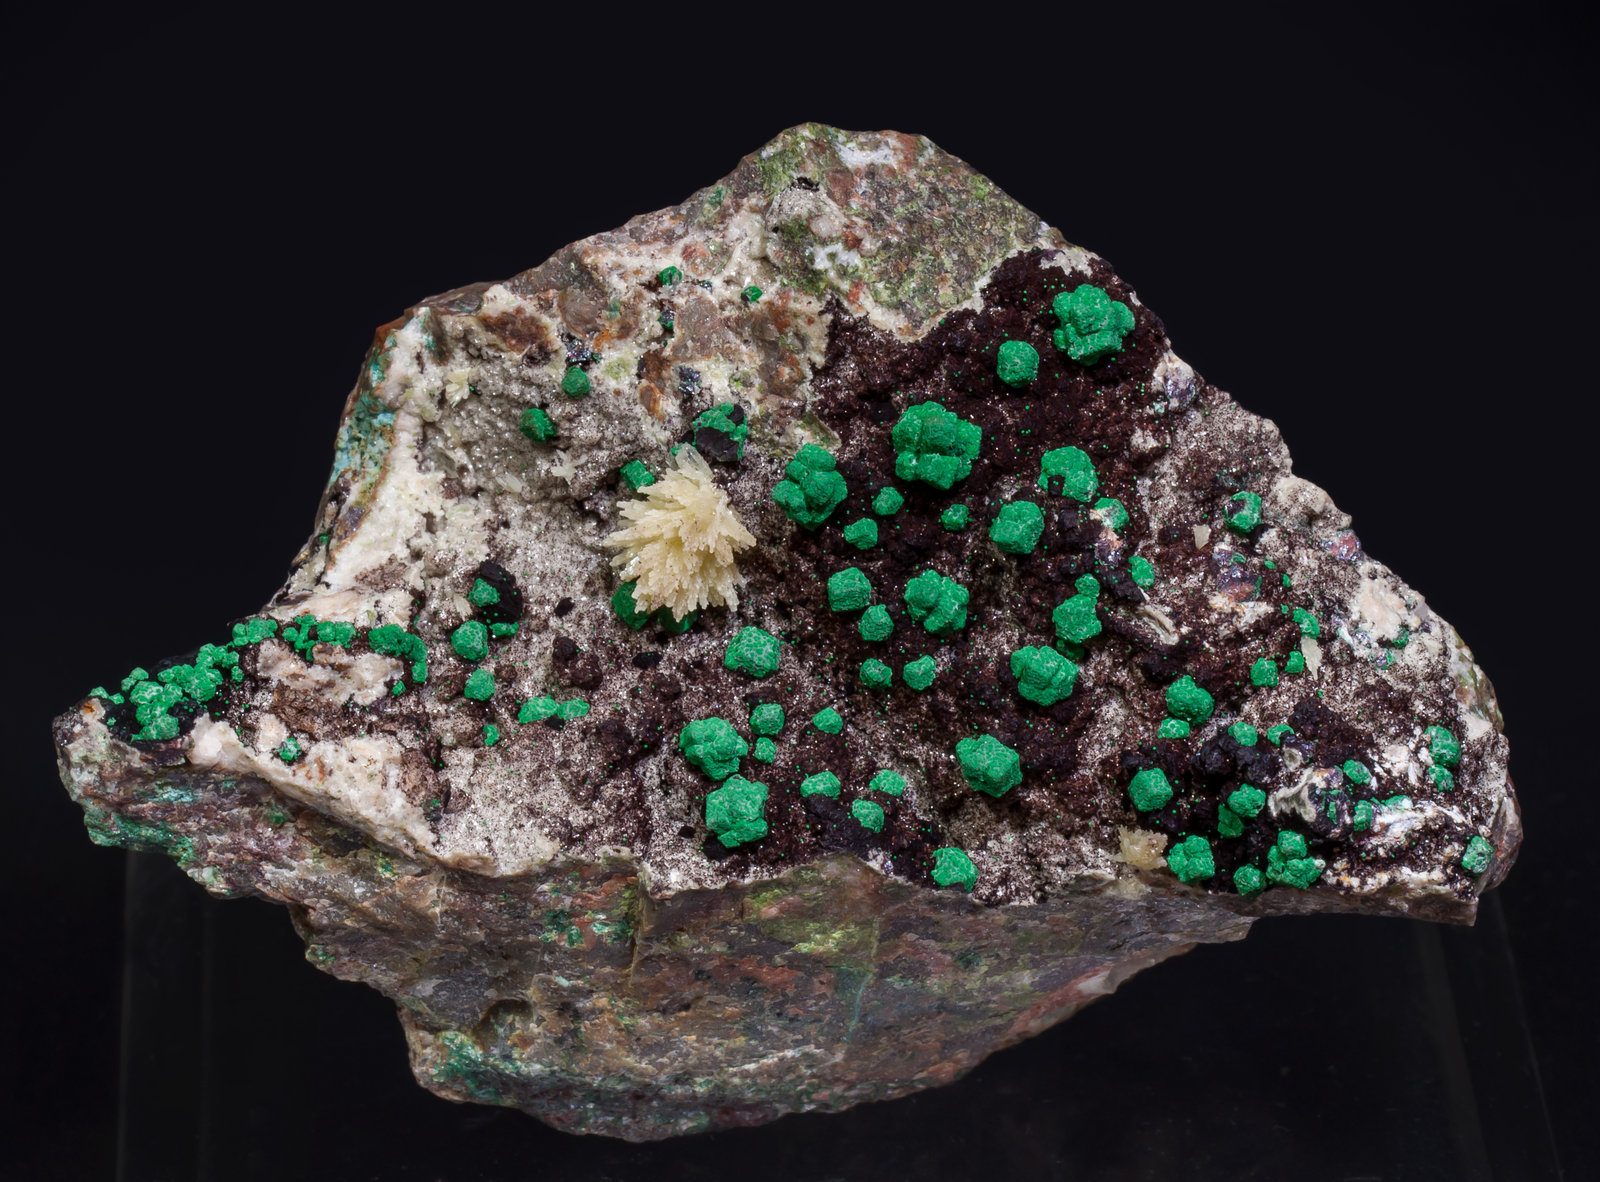 specimens/s_imagesAI8/Malachite-MT93AI8f.jpg